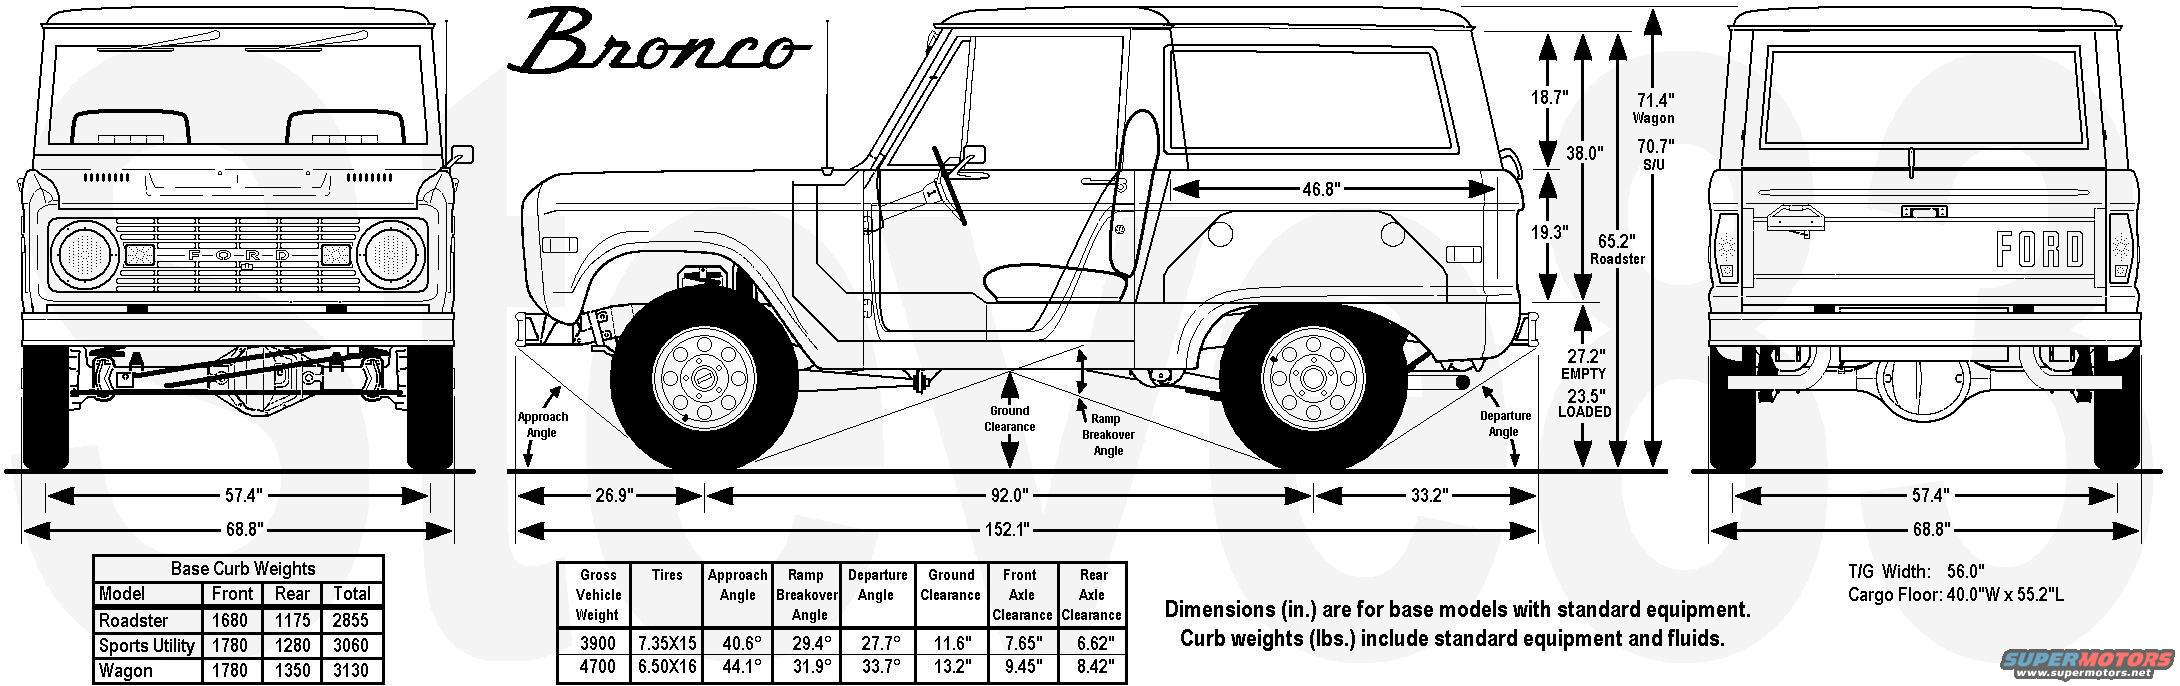 1976 ford bronco tech diagrams picture. Black Bedroom Furniture Sets. Home Design Ideas